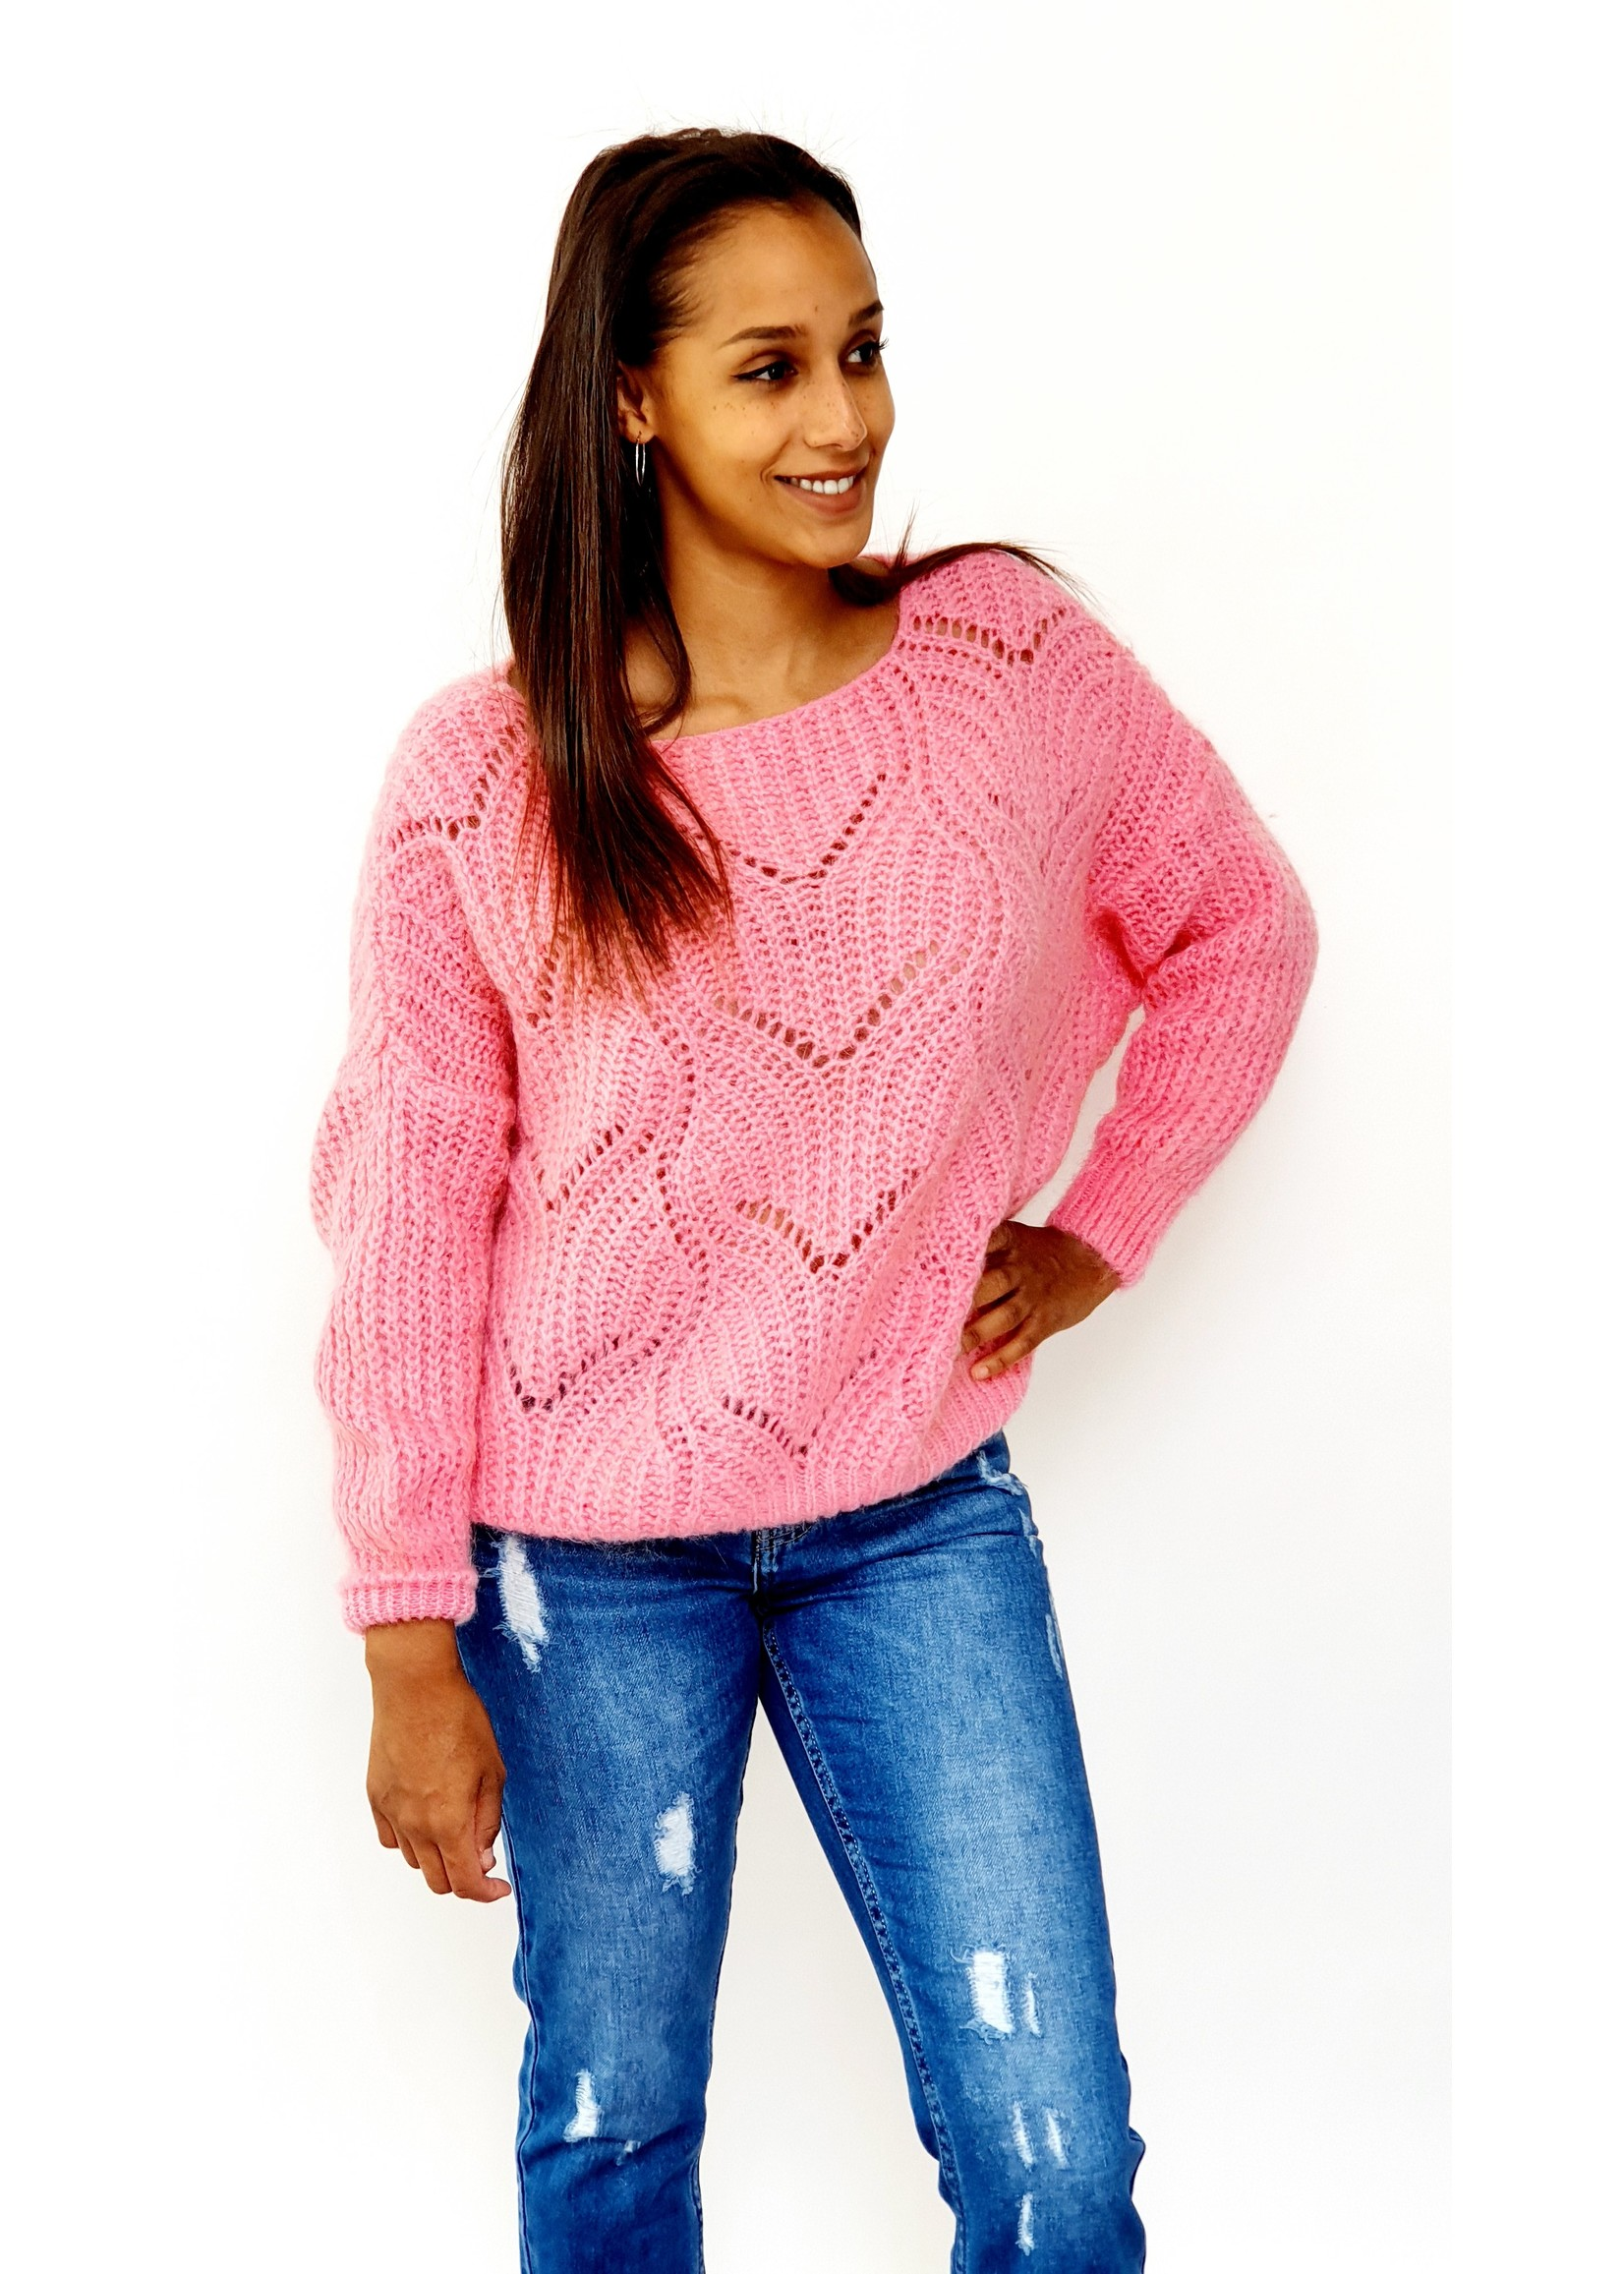 Feeling soft pink knitted sweater